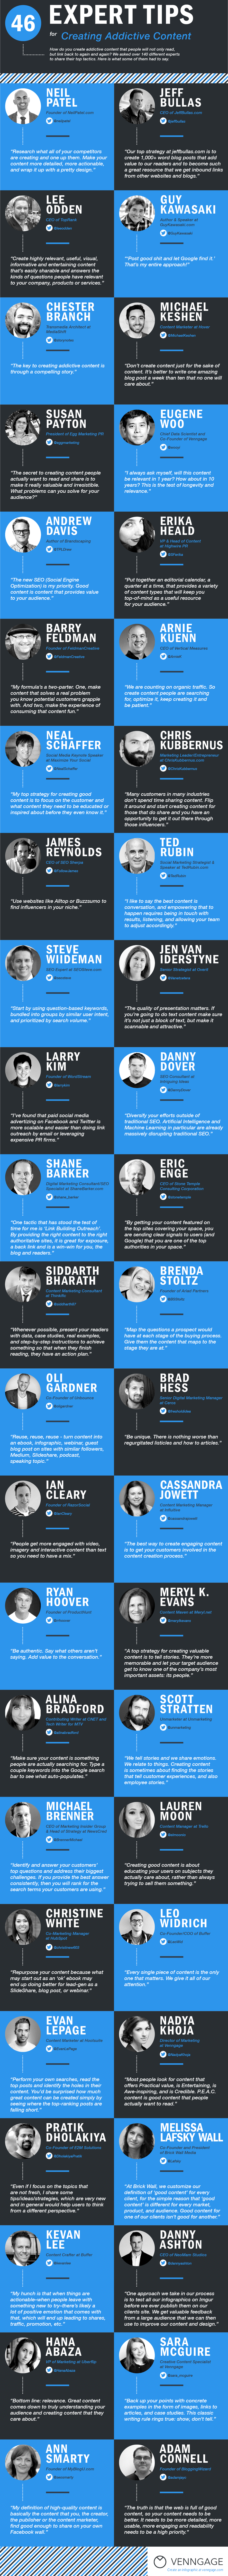 Getting Expert Influencers to Contribute to Your Blog Content [Infographic] Addictive Content Infographic